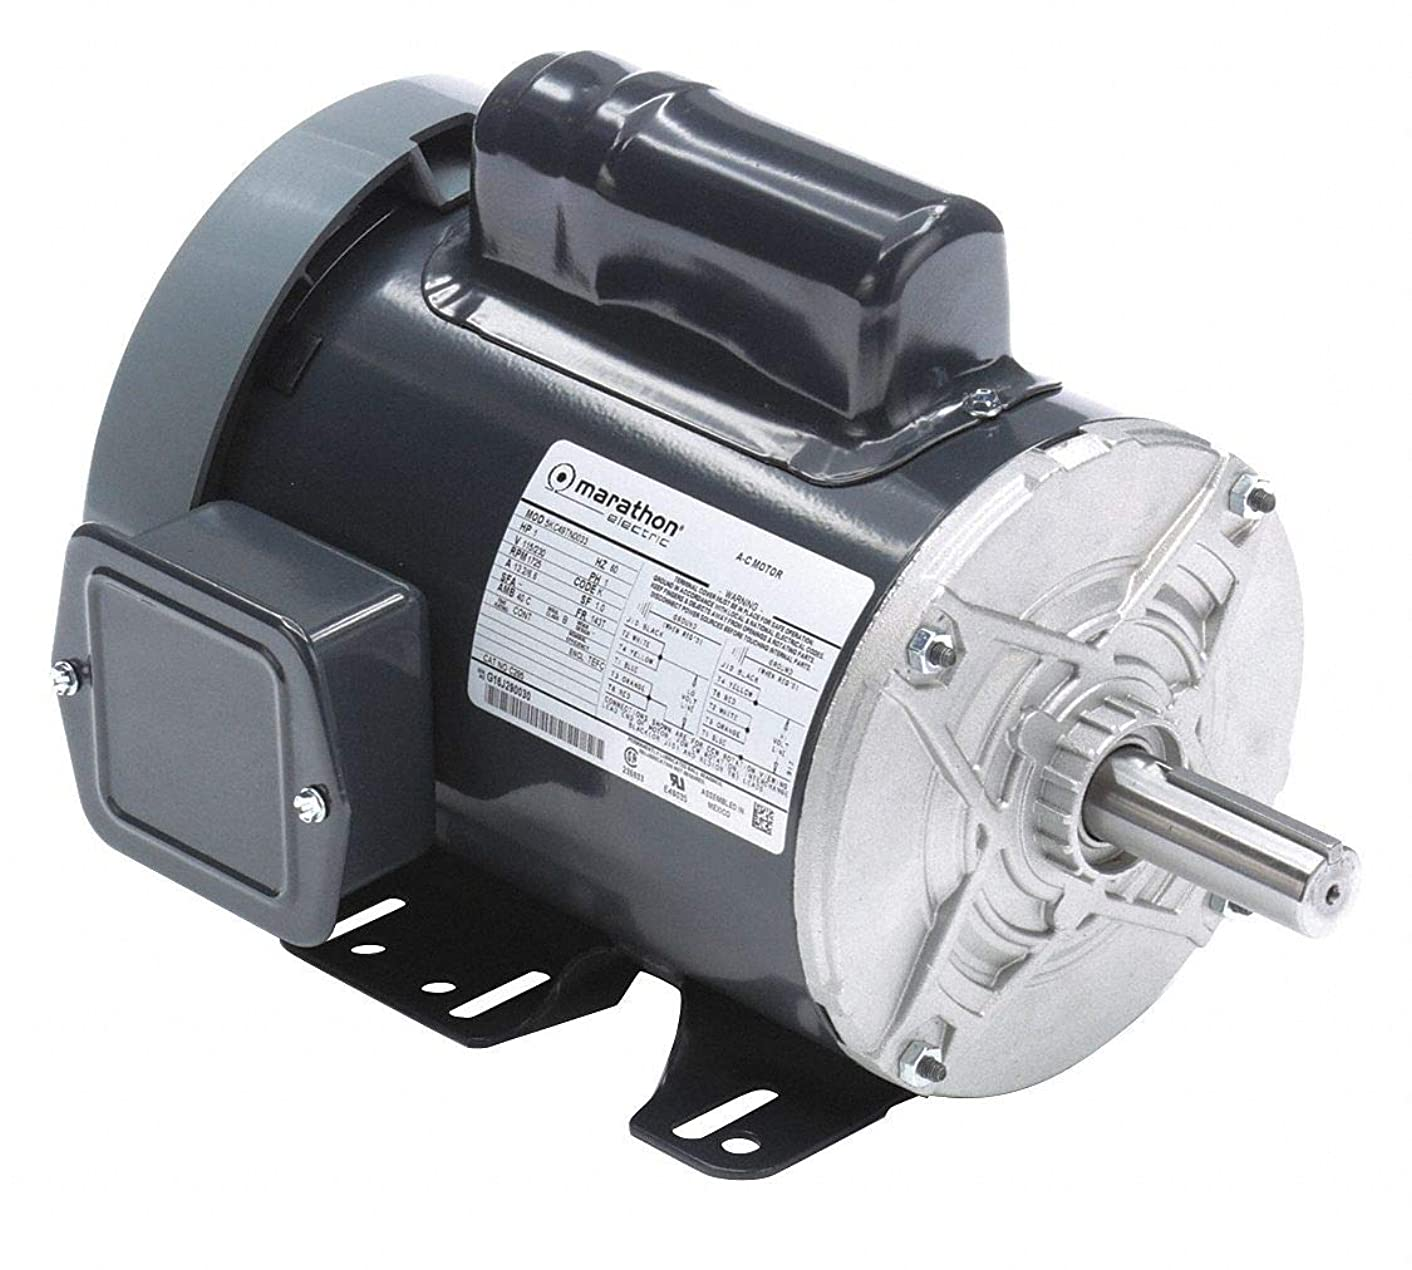 Marathon C295 143T Frame Totally Enclosed Fan Cooled 5KC49TN0033 General Purpose Motor, 1 hp, 1800 RPM, 115/230 VAC, 1 Phase, 1 Speed, Ball Bearing, Rigid Base, Capacitor Start